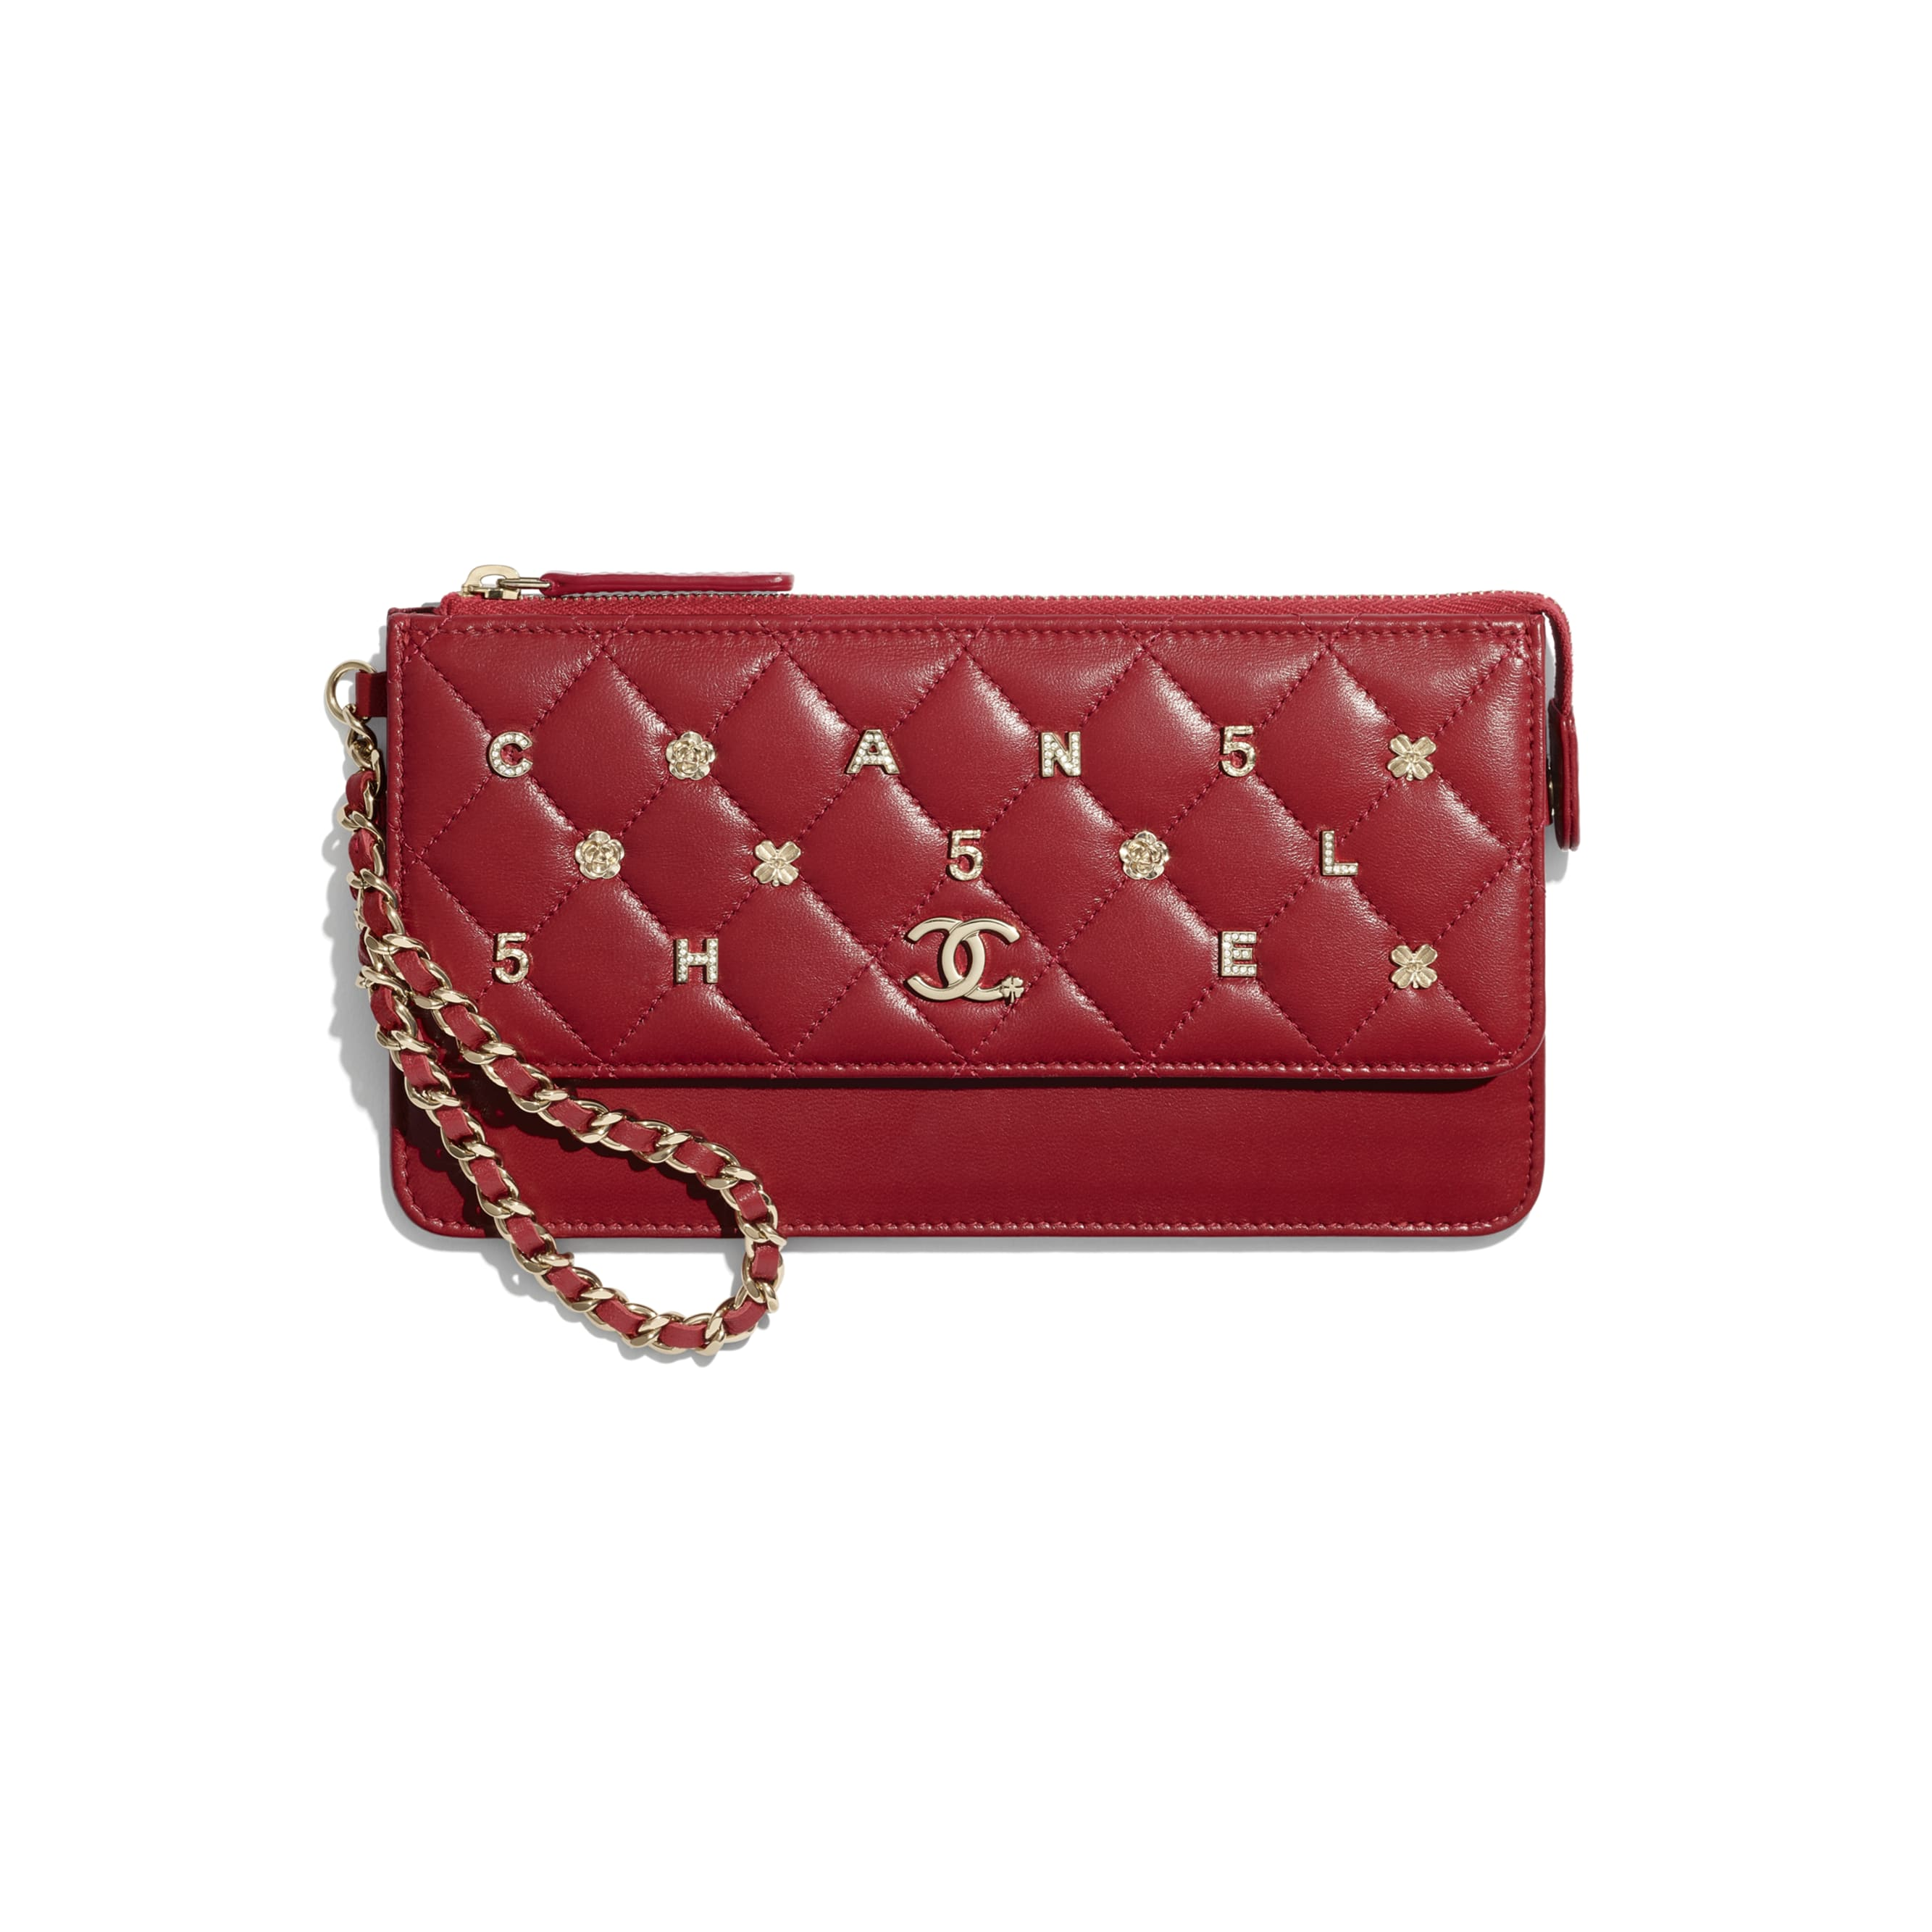 Wallet with Handle - Red - Lambskin, Charms & Gold-Tone Metal - CHANEL - Default view - see standard sized version